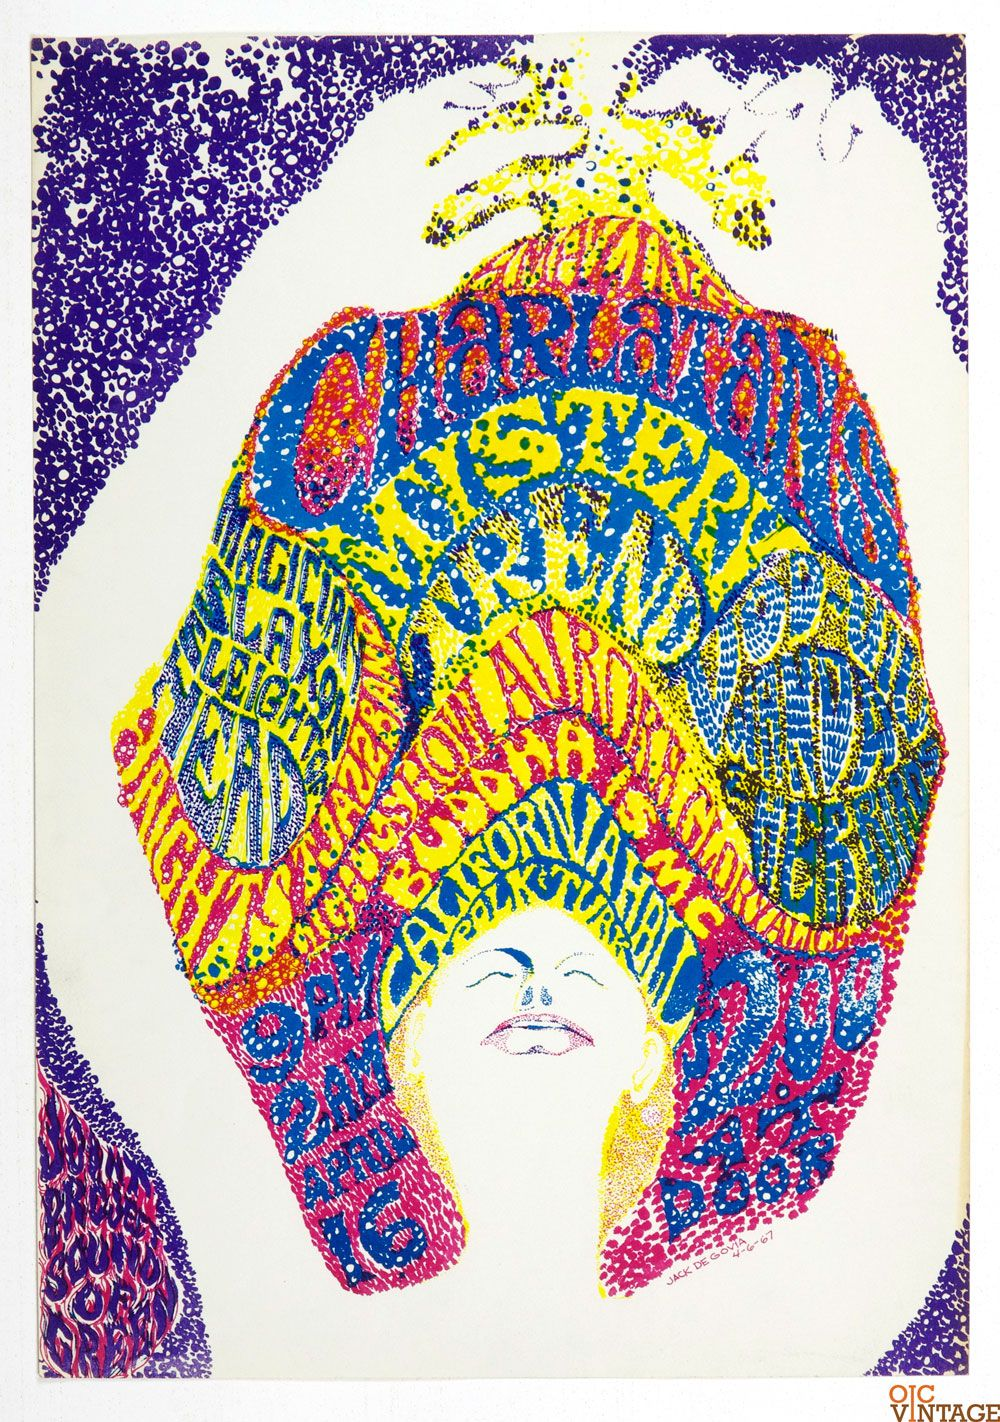 California Hall Poster AOR 2.159 Charlatans 1967 Apr 16